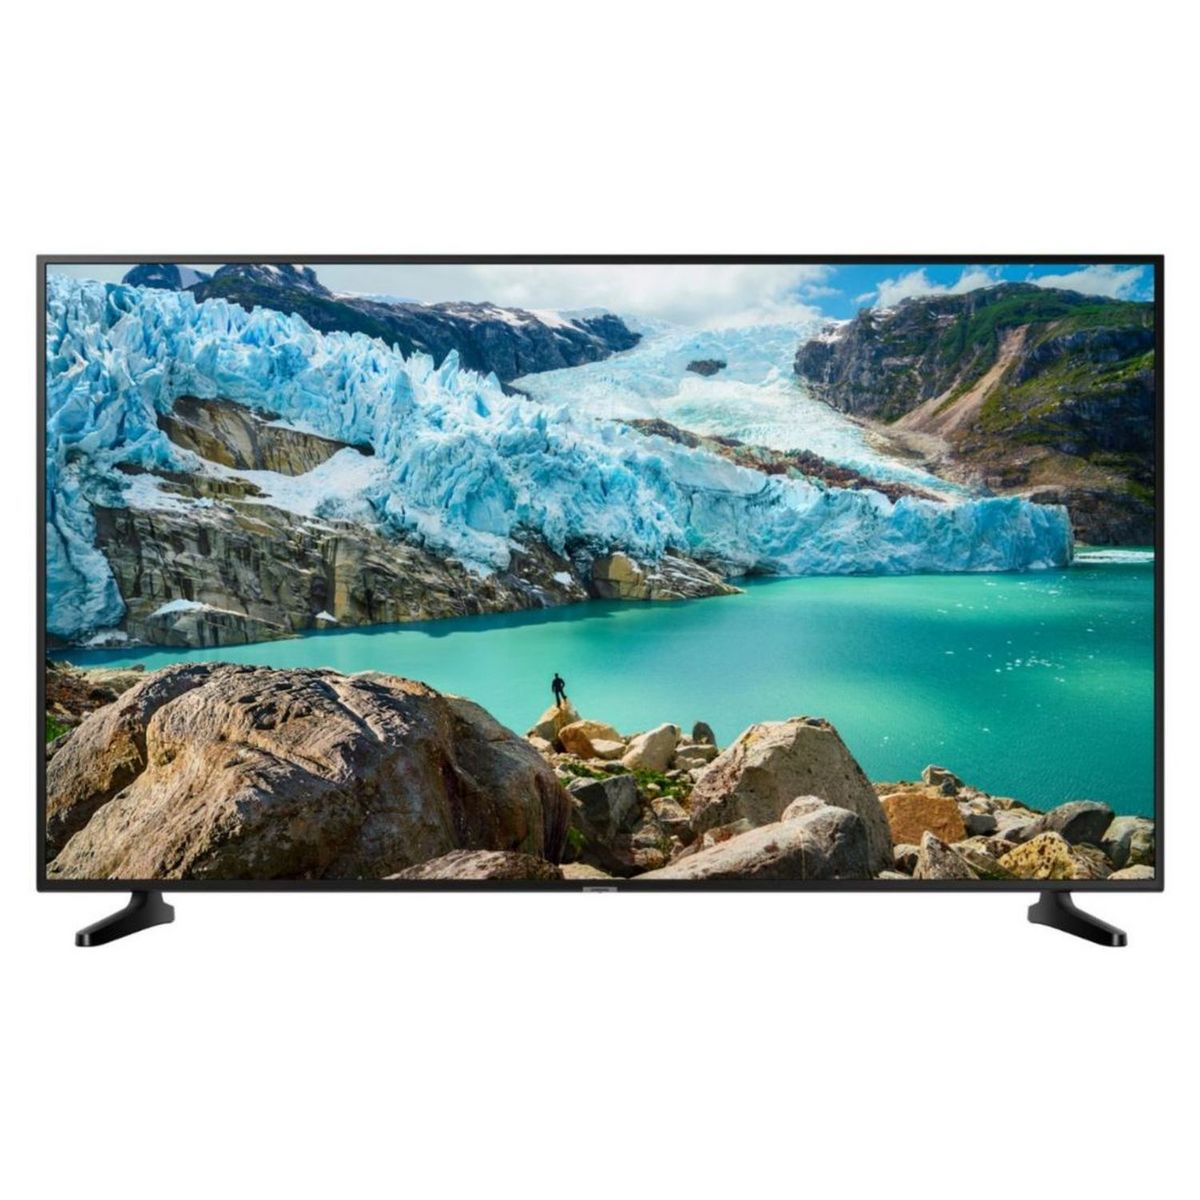 "Téléviseur intelligent LED Ultra HD 4K 65"" 3840 x 2160 HDMI USB Wifi Bluetooth UE65RU7025"